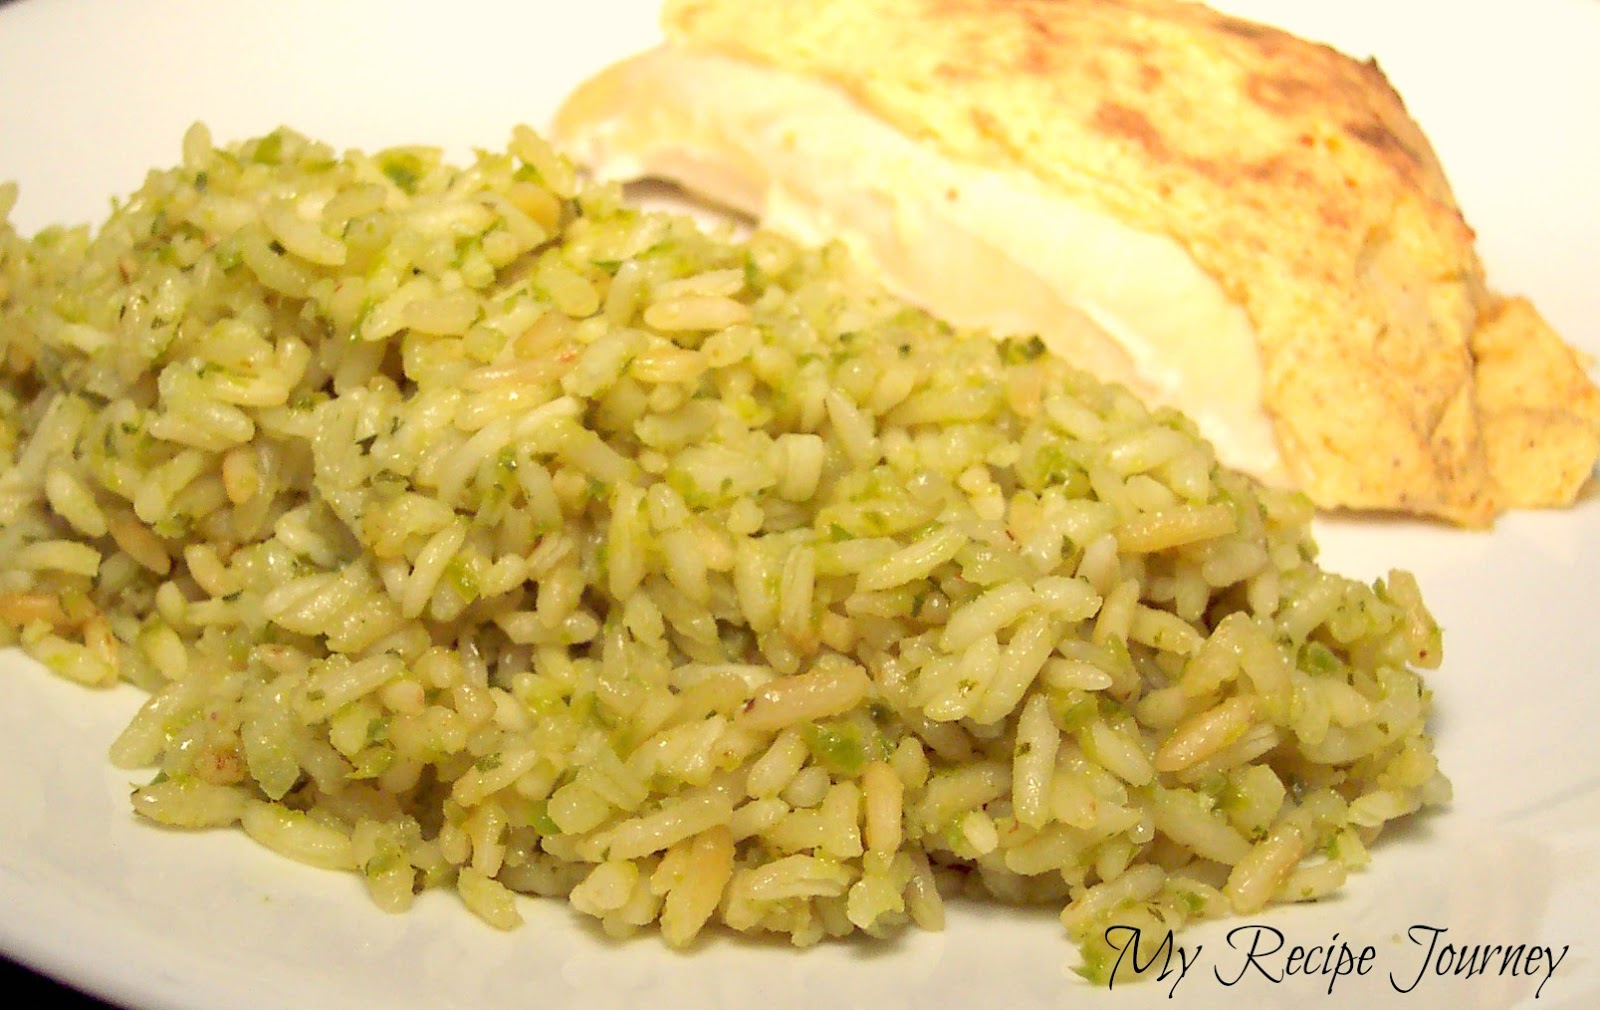 My Recipe Journey: Mexican Green Rice